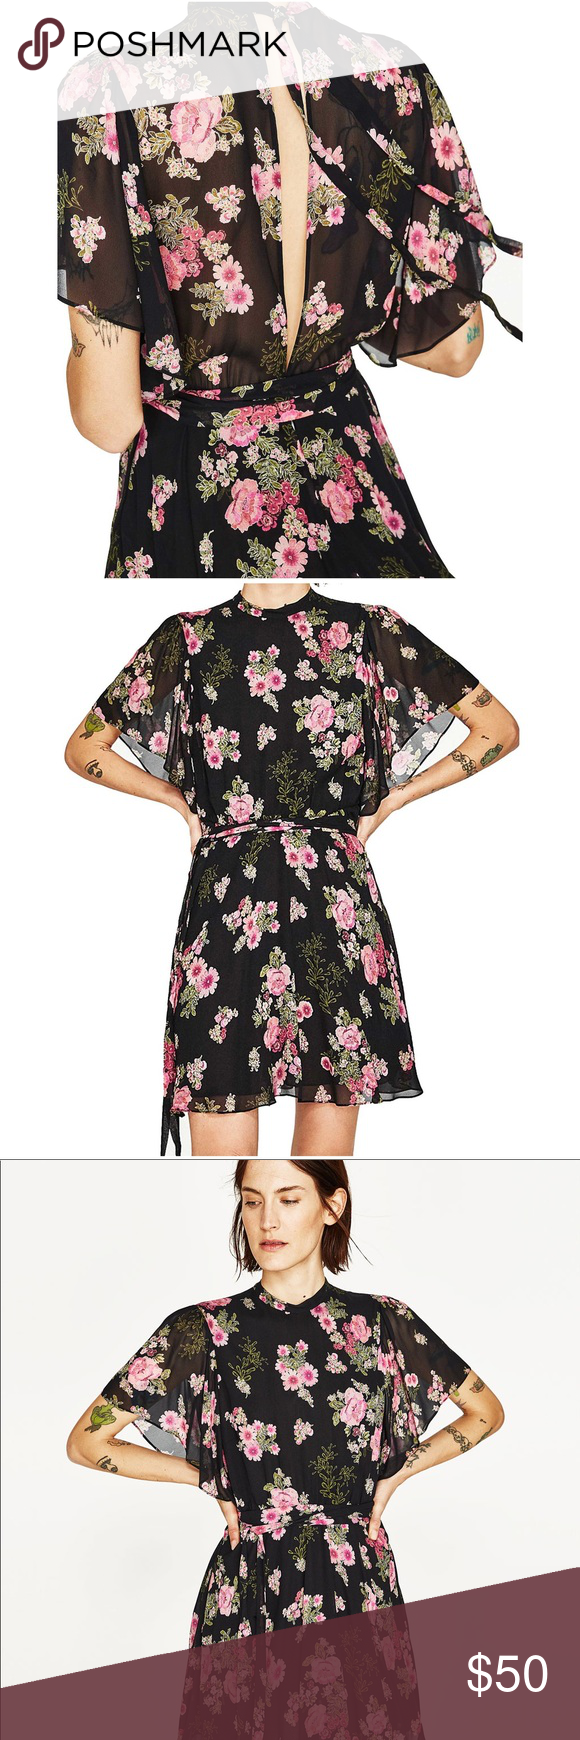 bb48f05836 Nwot Zara Black Floral Printed Flowy Mini Dress Printed dress with round  neck and short frilled sleeves . Contrast belt . Lined skirt .